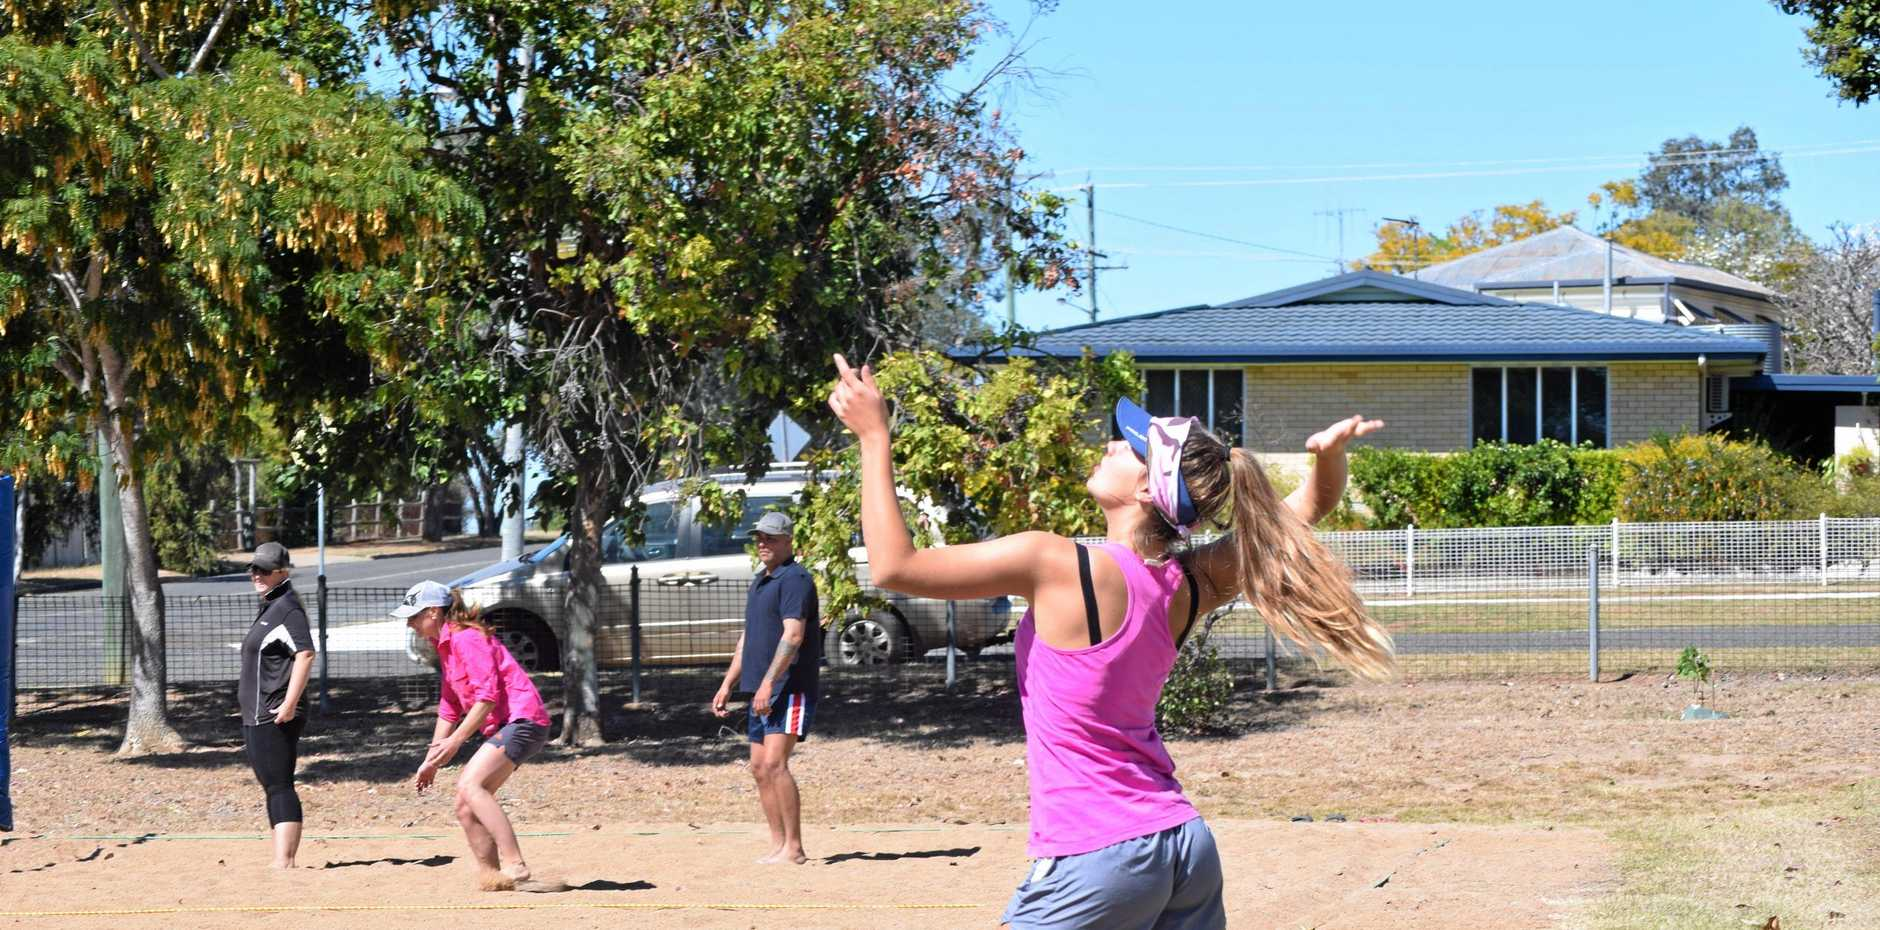 FOCUS: Nicola Thorburn in action at the volleyball comp.